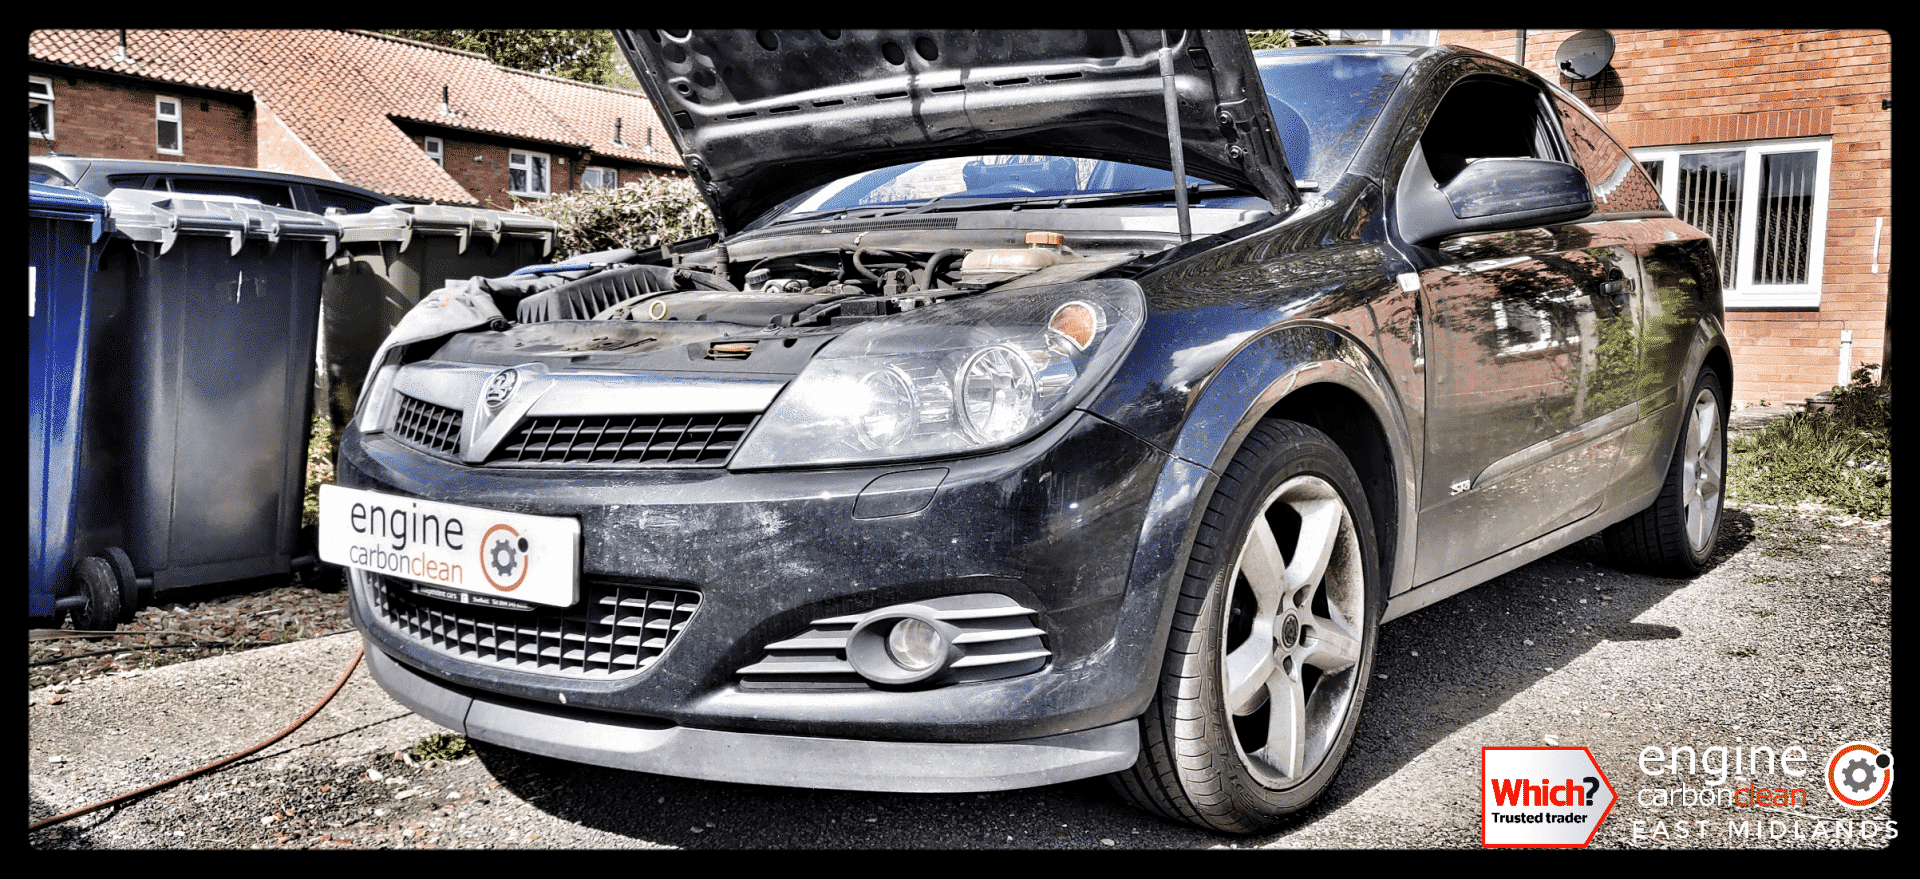 Diagnostic Consultation and Engine Carbon Clean on a Vauxhall Astra 1.8 petrol (2009 - 99,800 miles)